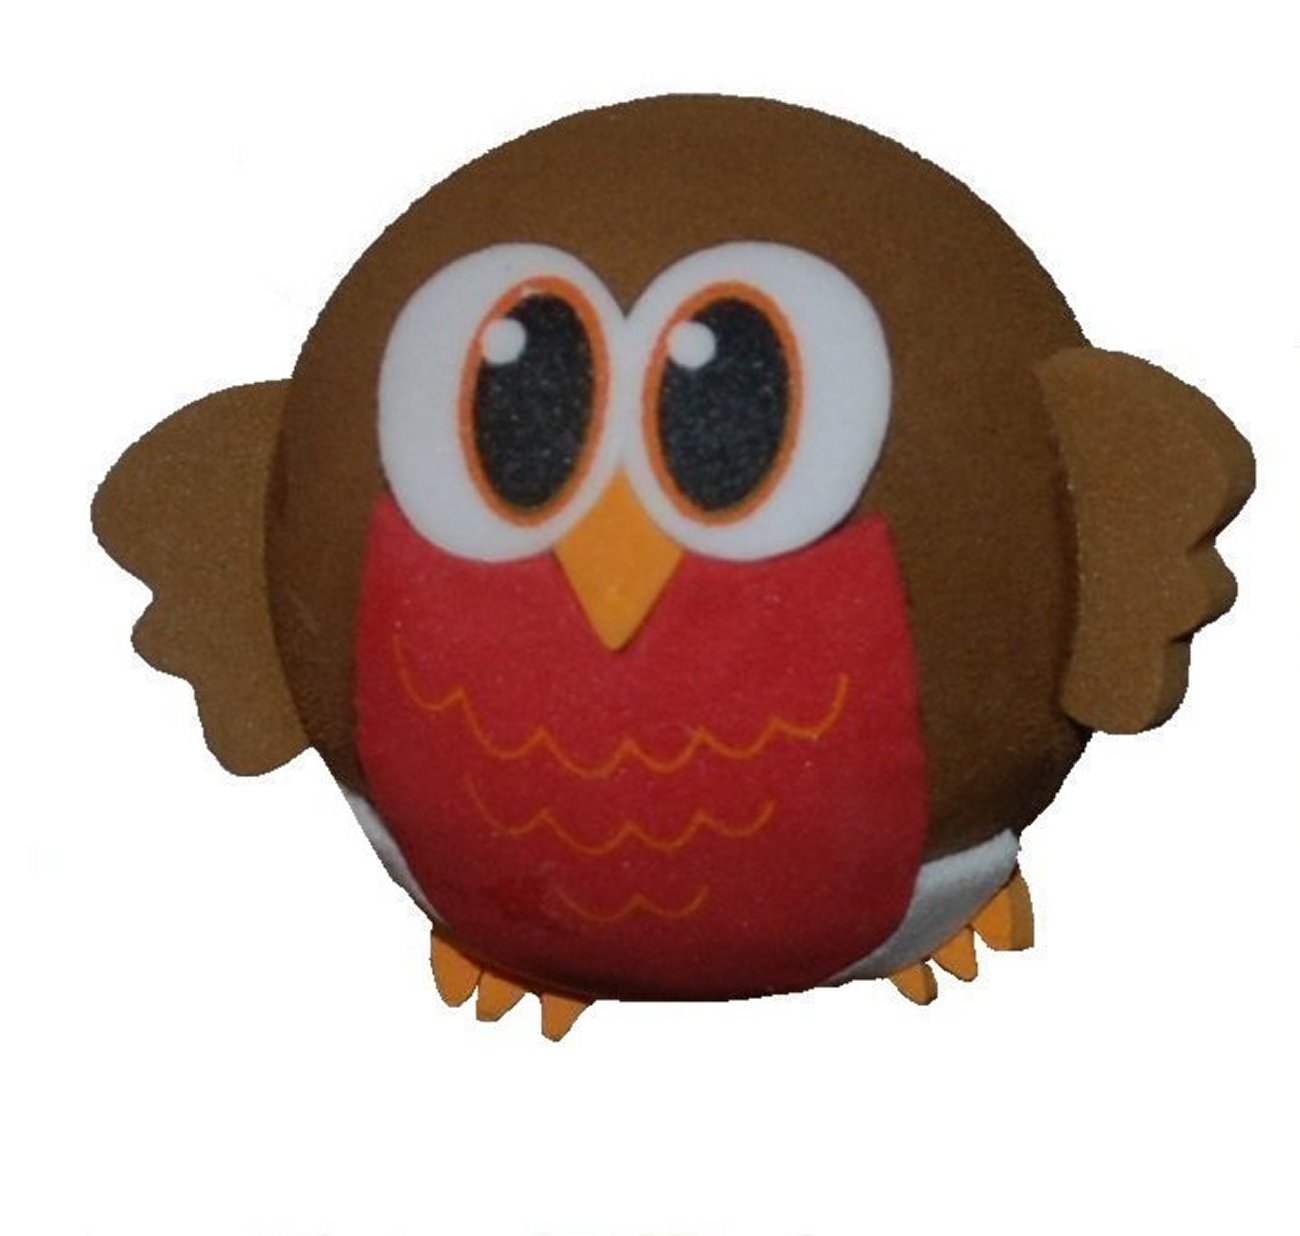 Aerialballs Cute Robin Redbreast Bird Car Aerial Ball Antenna Topper one P/&P charge no matter how many items you buy from